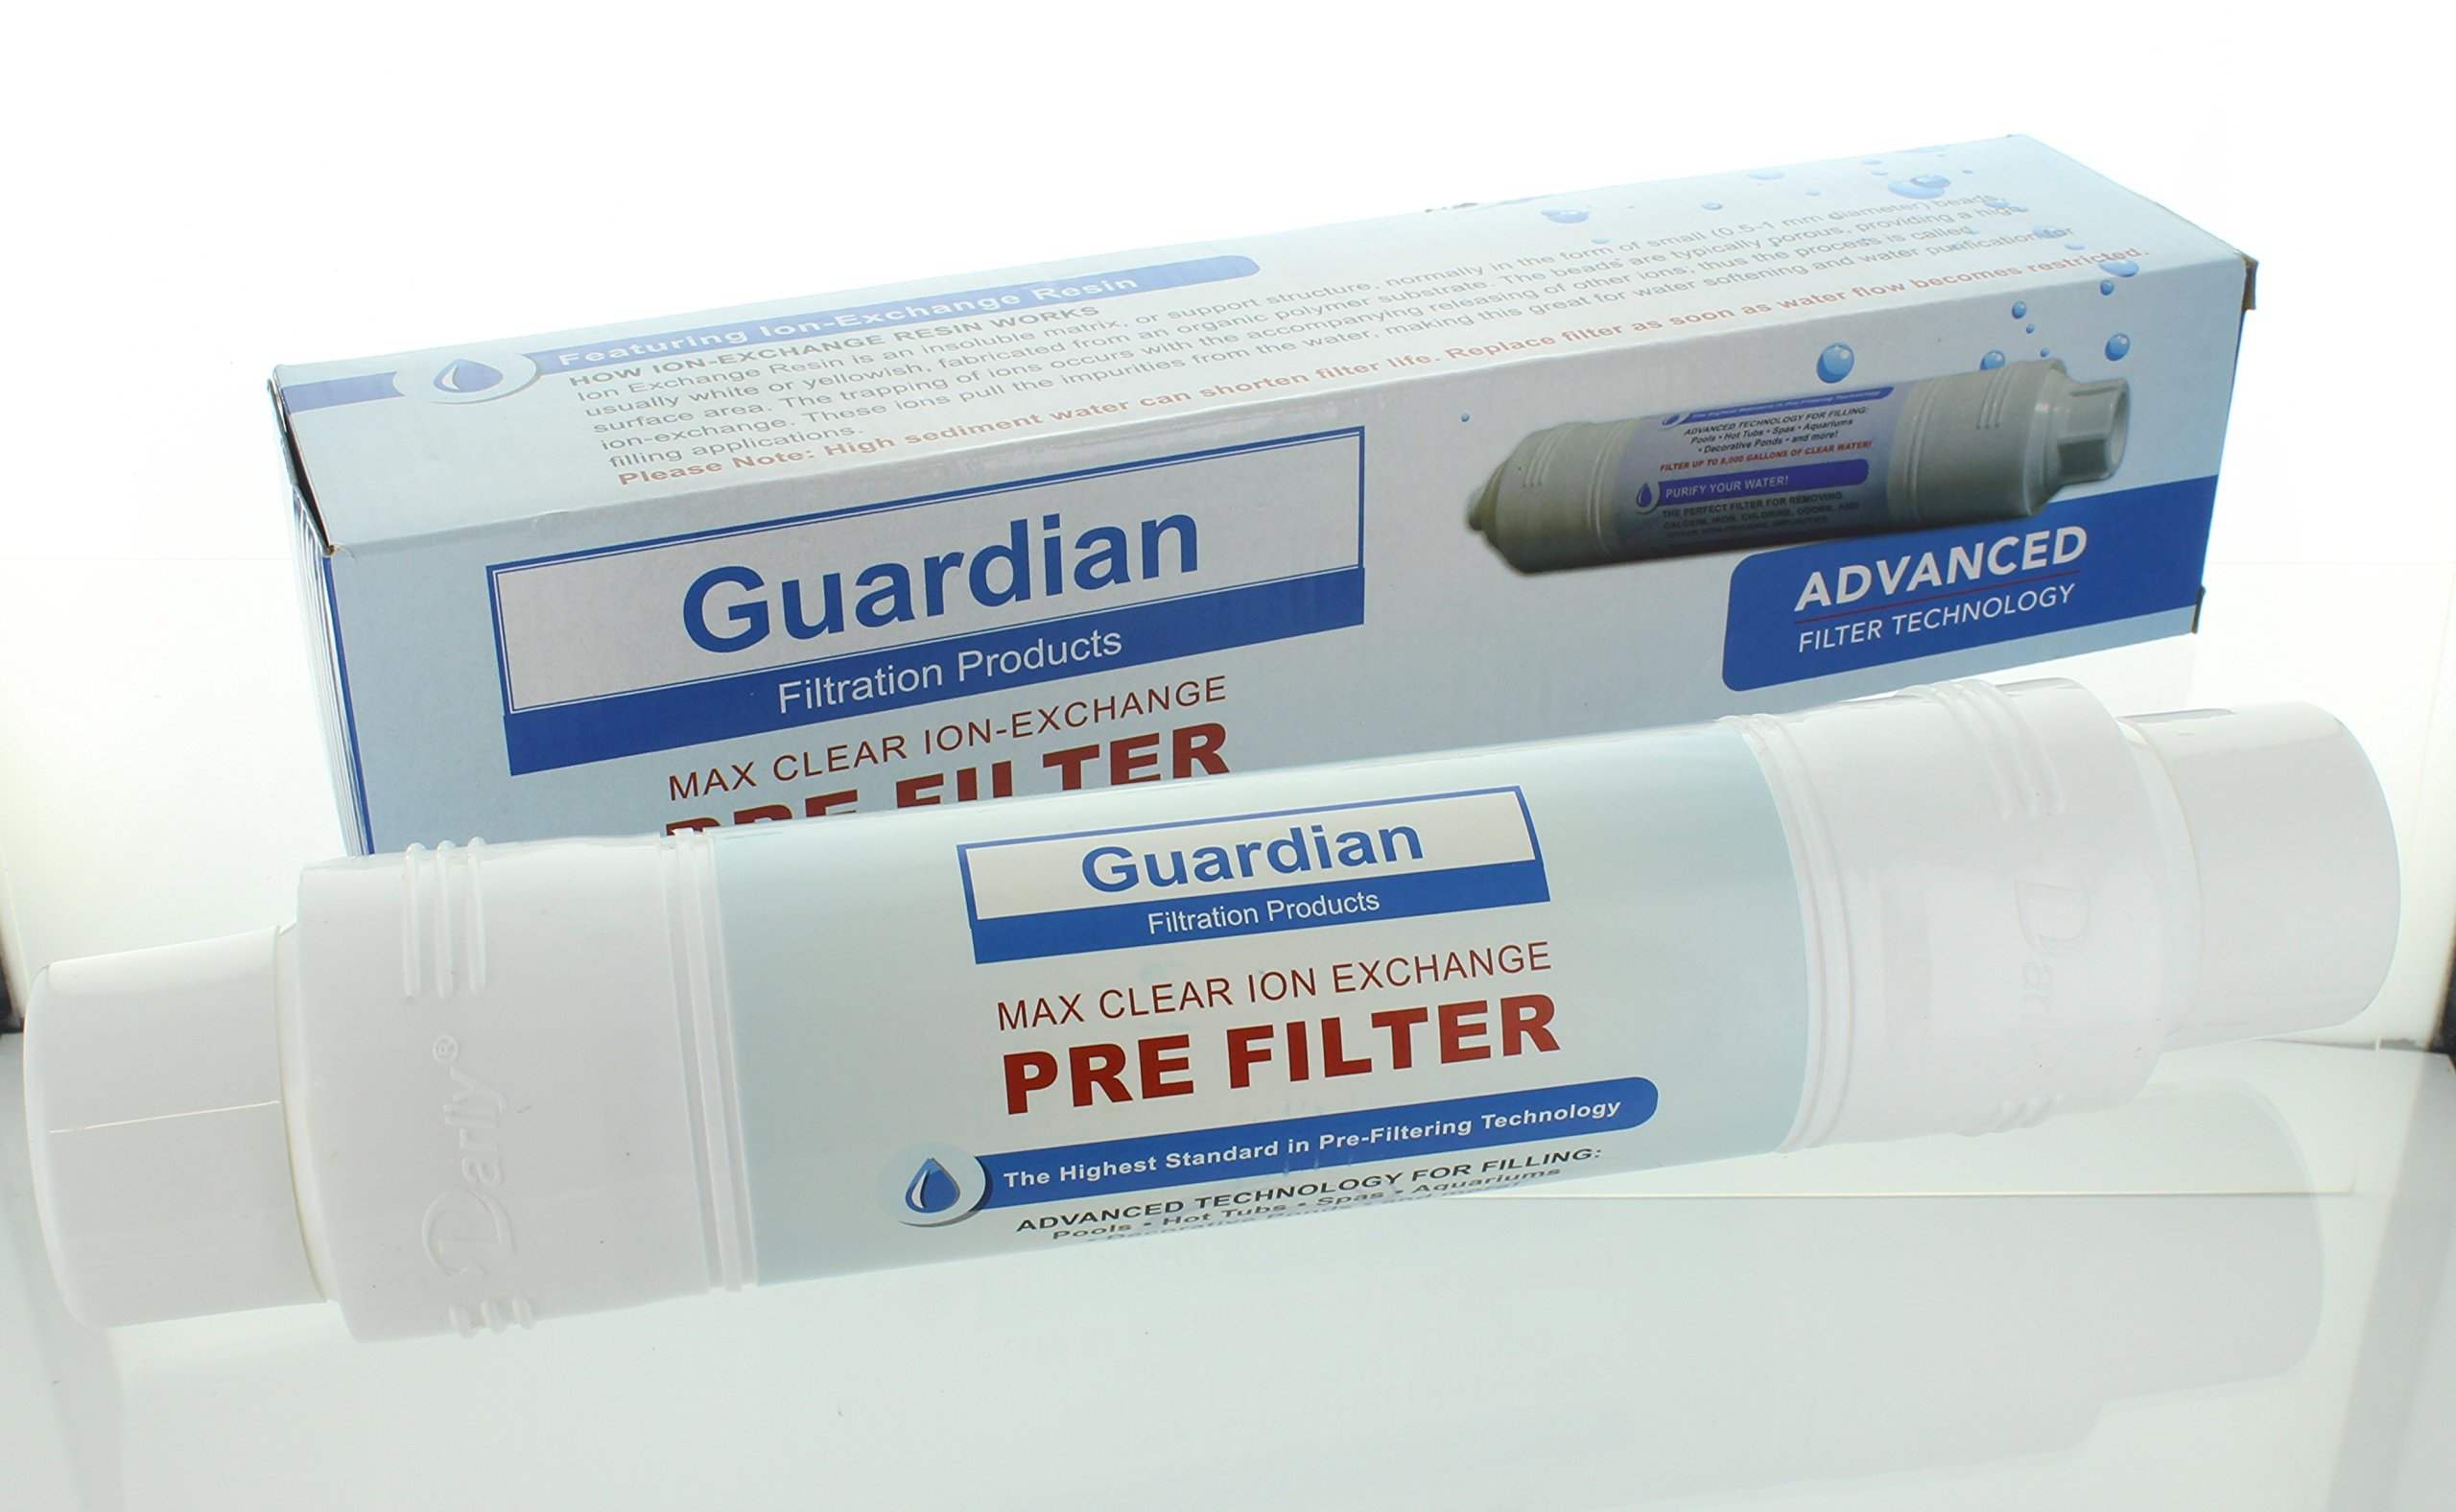 Guardian Filtration Products, Max Clear Ion Exchange Pre-Filter, Garden Hose Filter, Removes Metal, Minerals, Calcium, Fill Pools & Spas